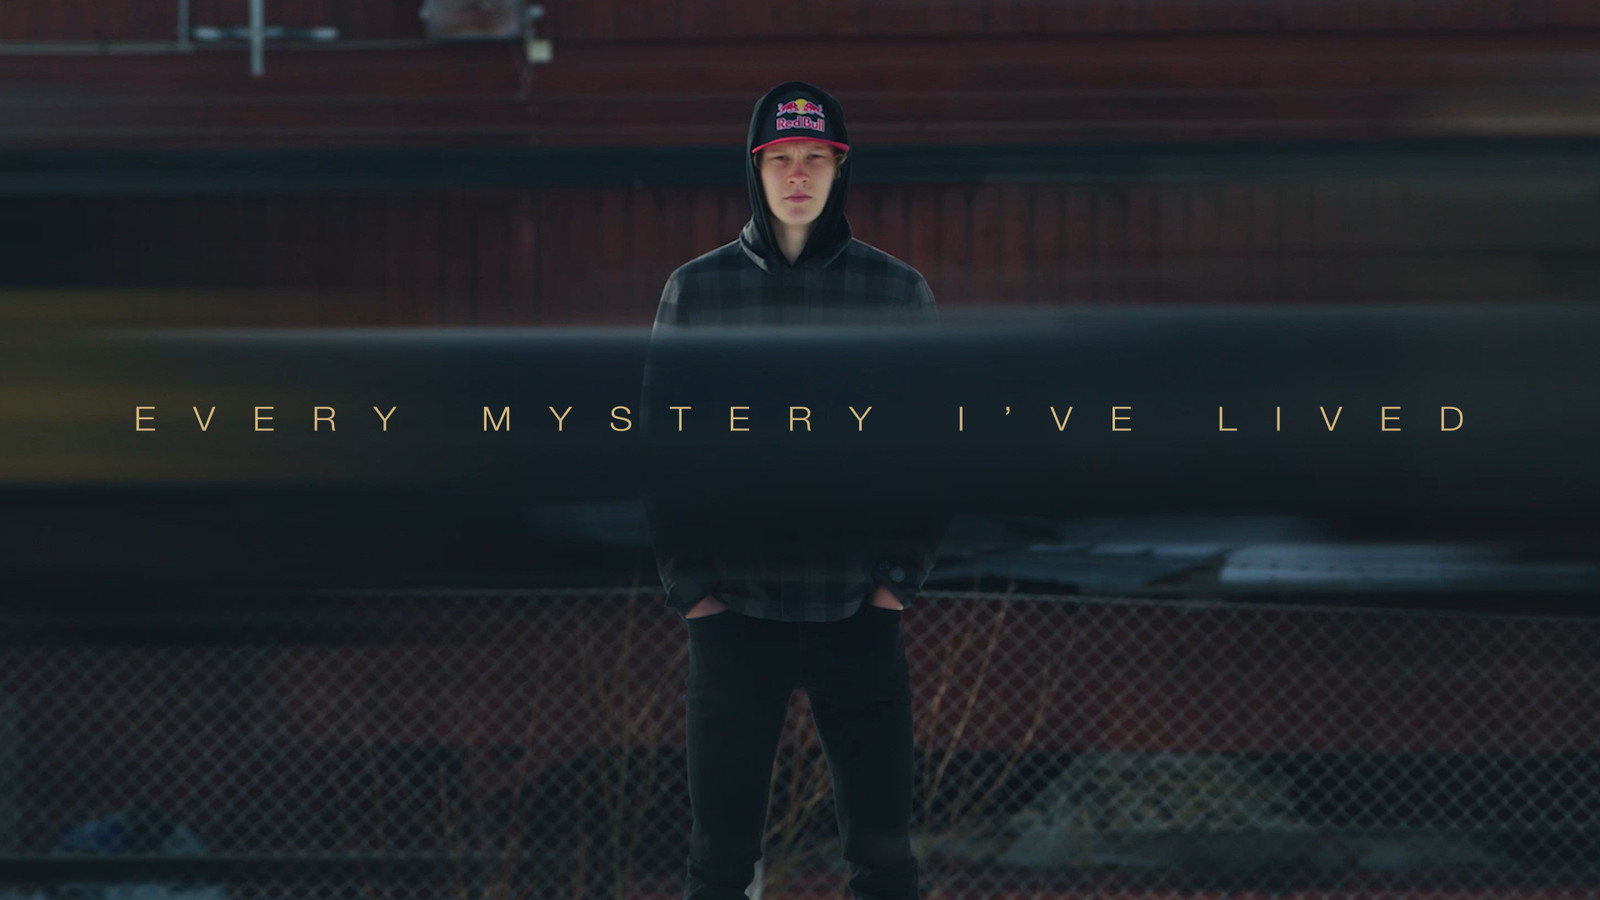 """Emil Johansson's """"Every Mystery I've Lived"""" Dives Deep into his Road Back to Biking"""